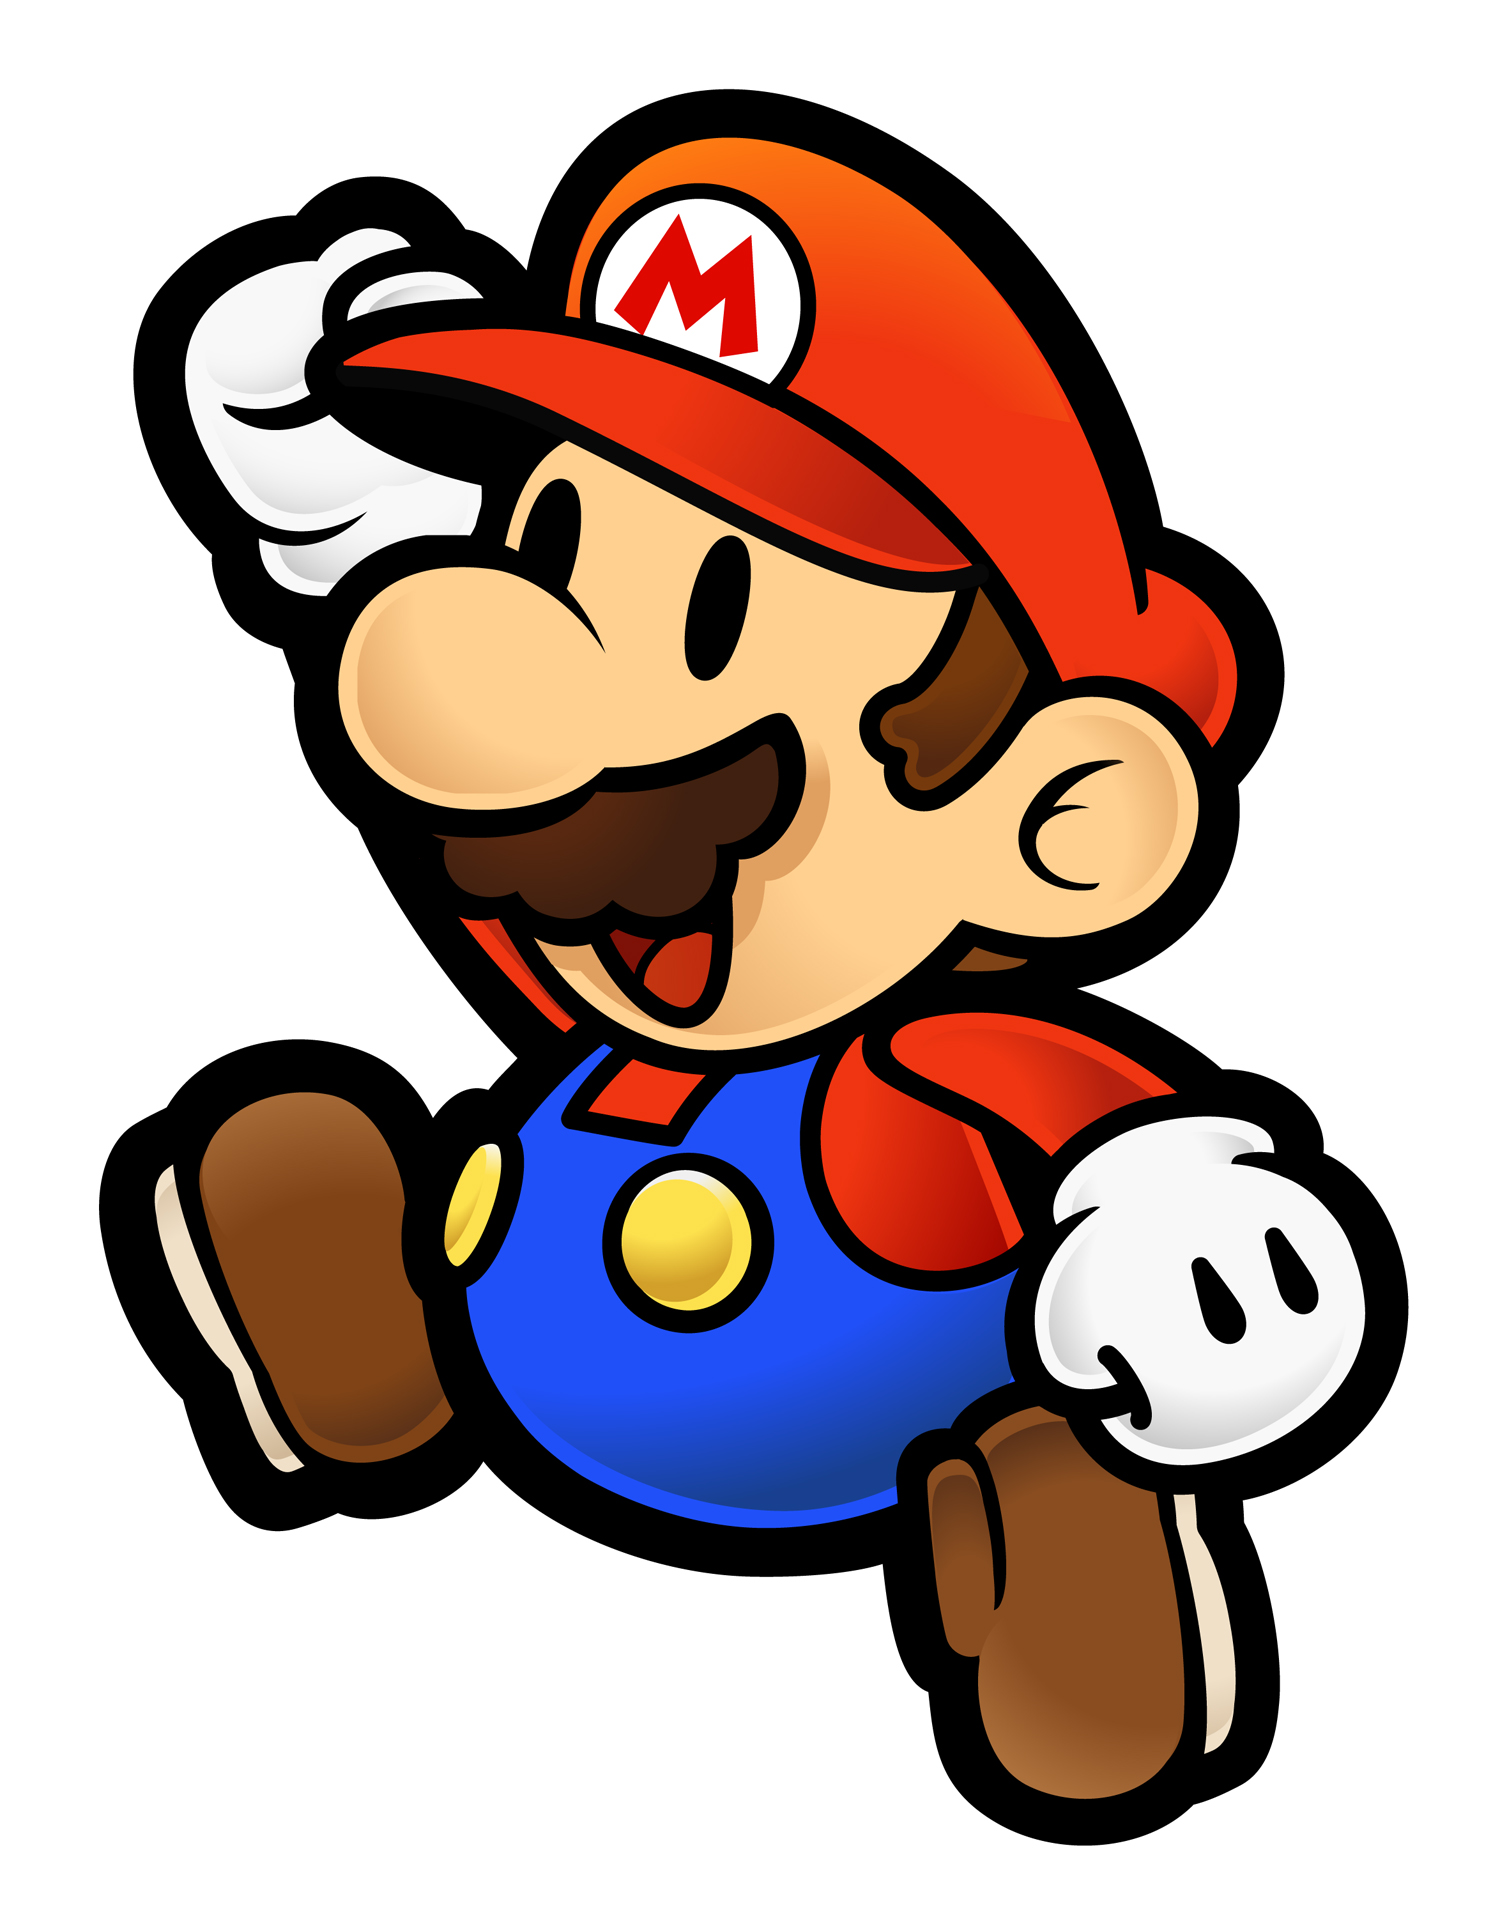 Paper Mario Wallpapers Video Game Hq Paper Mario Pictures 4k